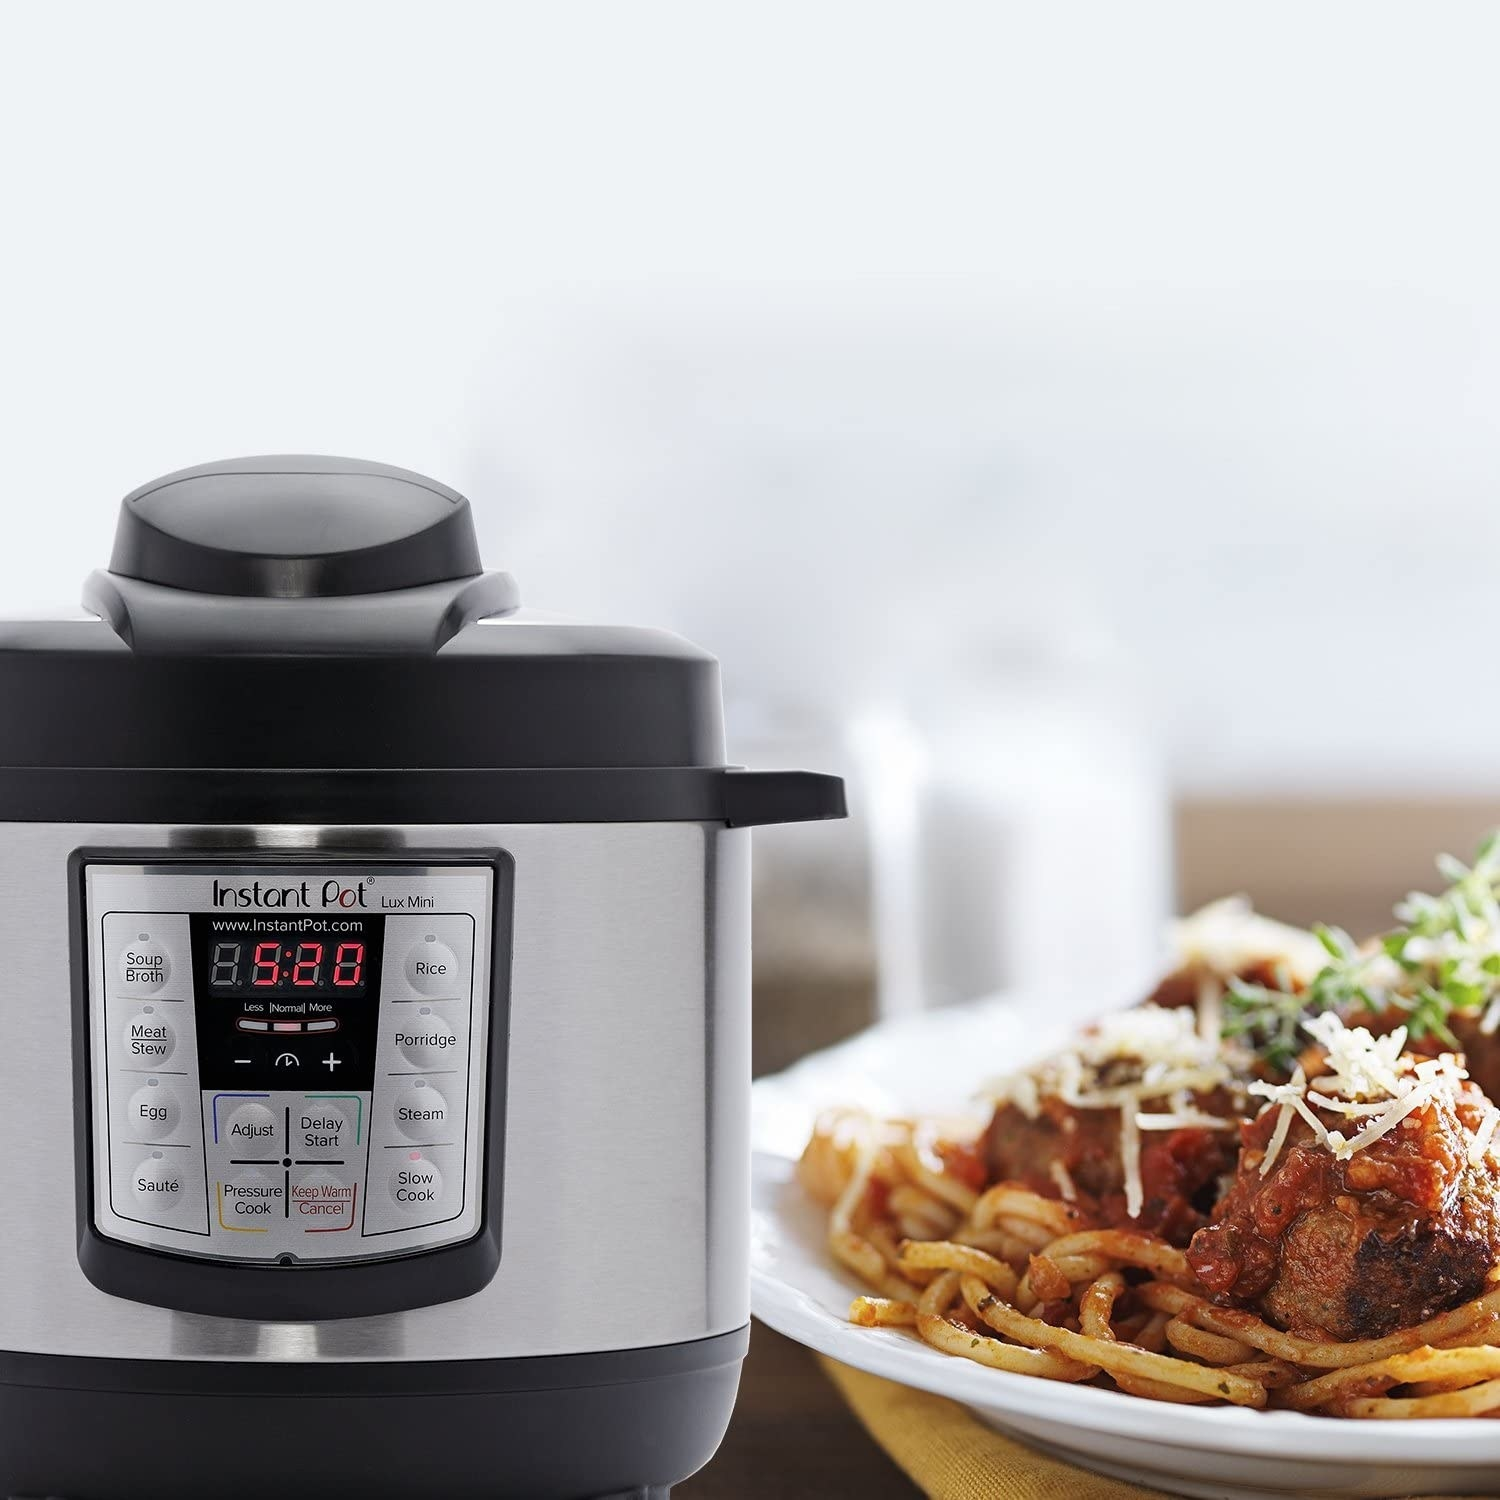 the instant pot lux mini next to a plate of spaghetti